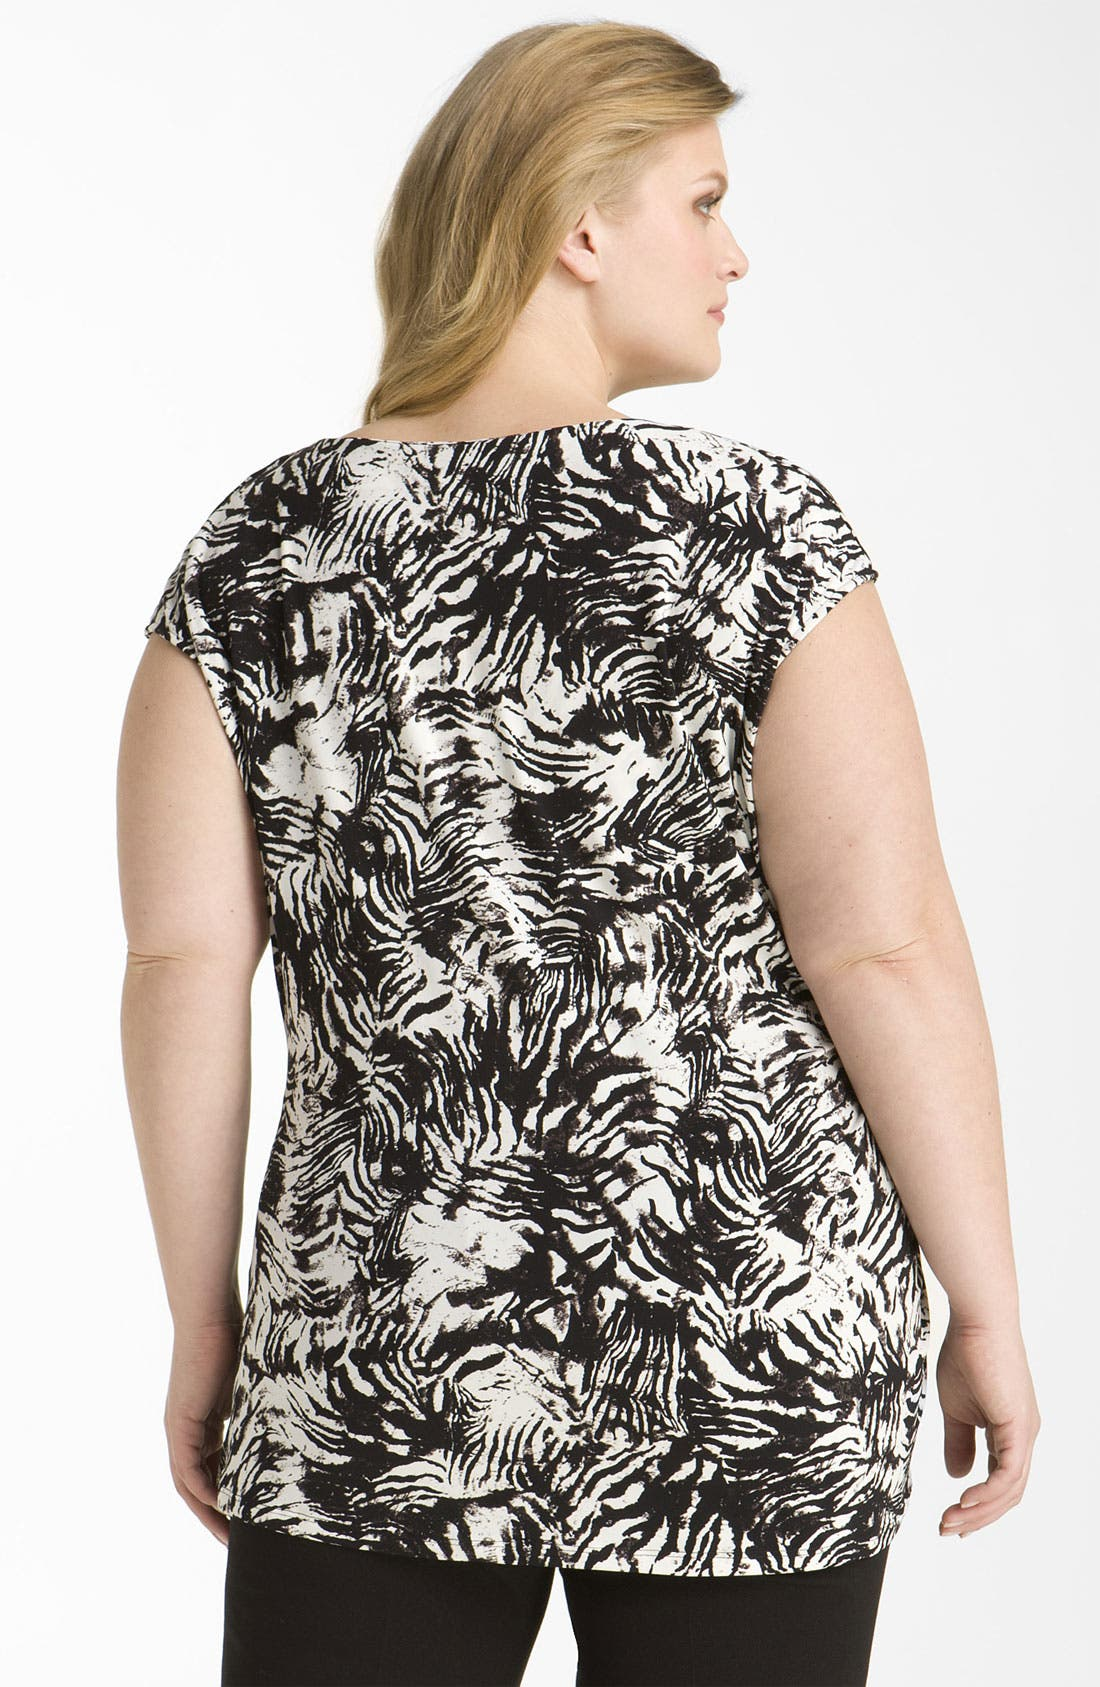 Alternate Image 2  - Vince Camuto 'Zebra Skin' Cap Sleeve Top (Plus)